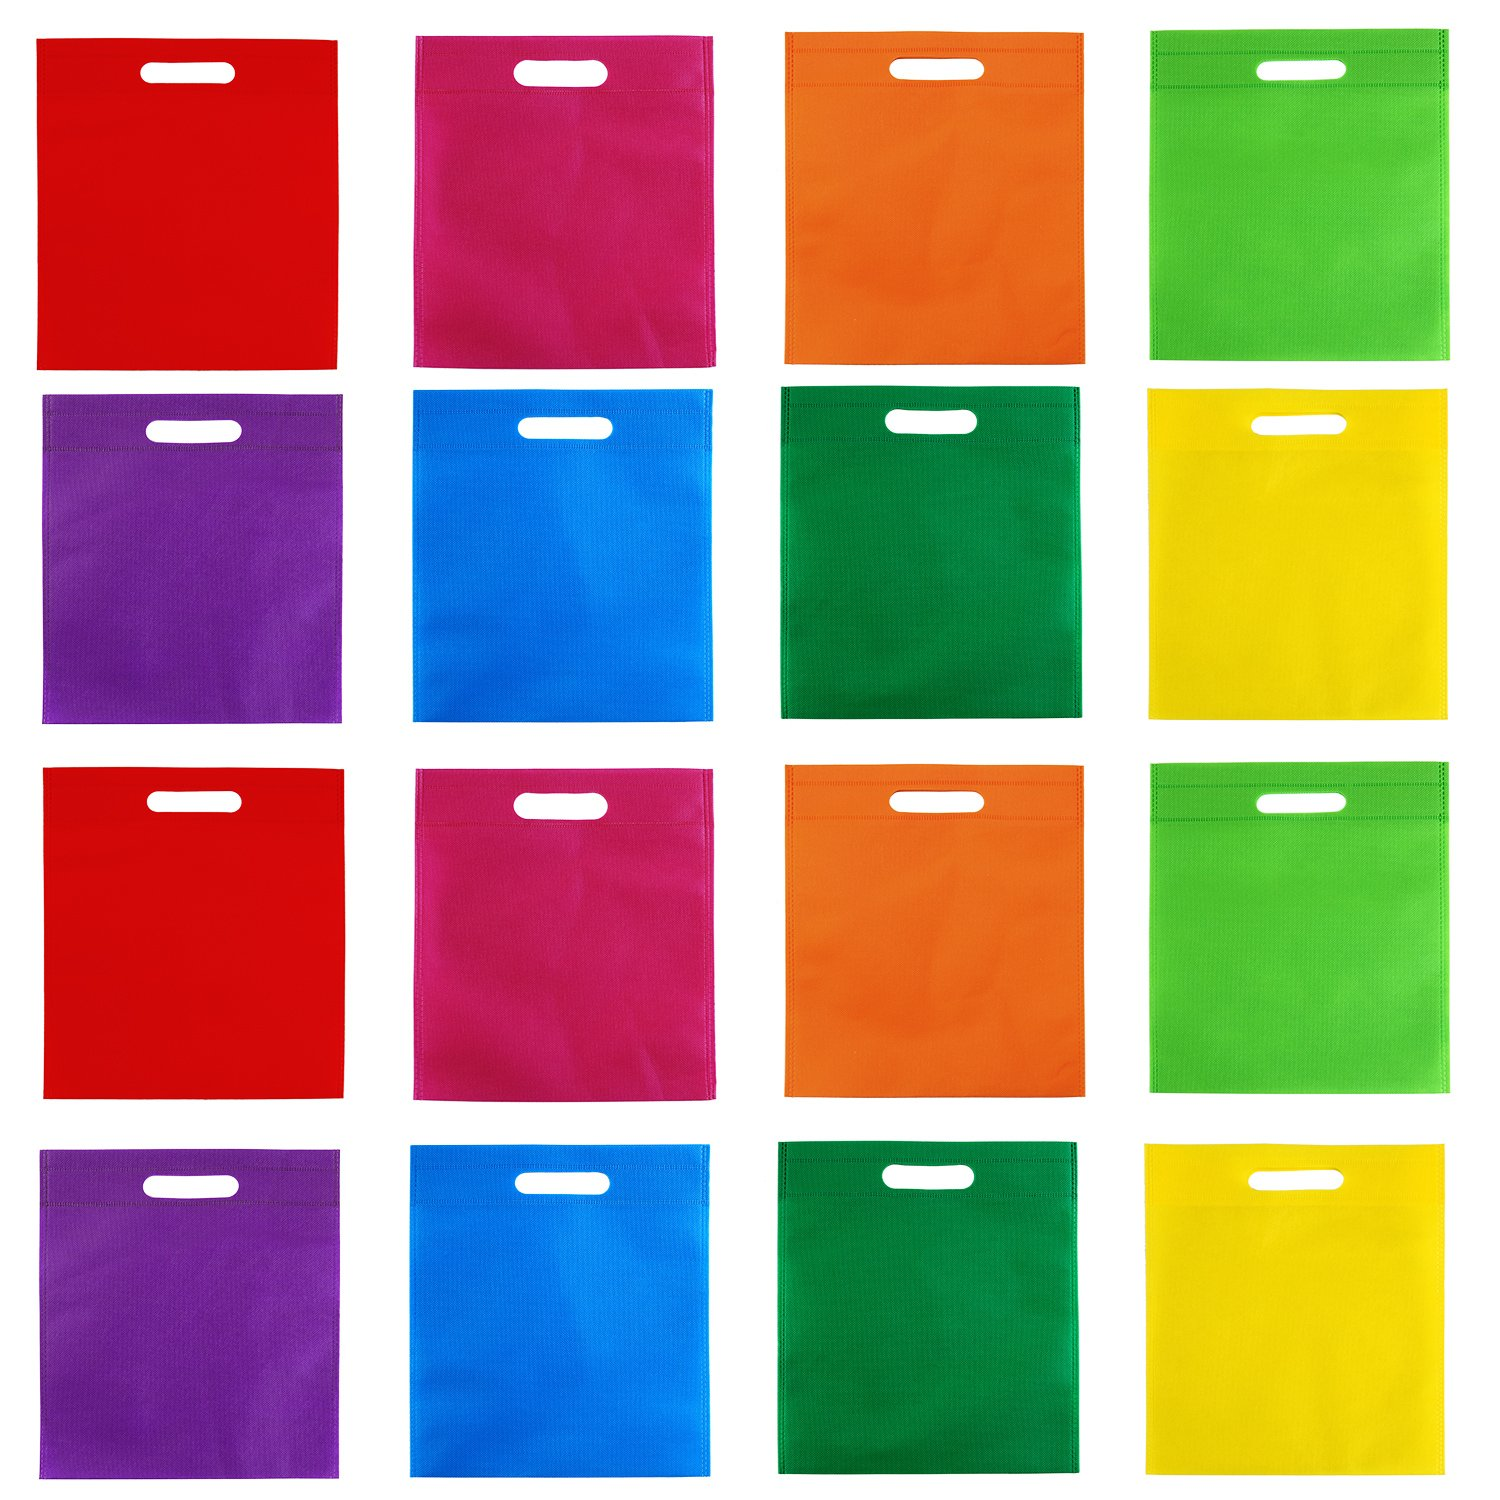 Aneco 40 Pieces 10 12 inches Poly Non-Woven Bags Party Gift Tote Bag Handles Goodie Rainbow Colors Treat Bag Party Favors,8 Colors